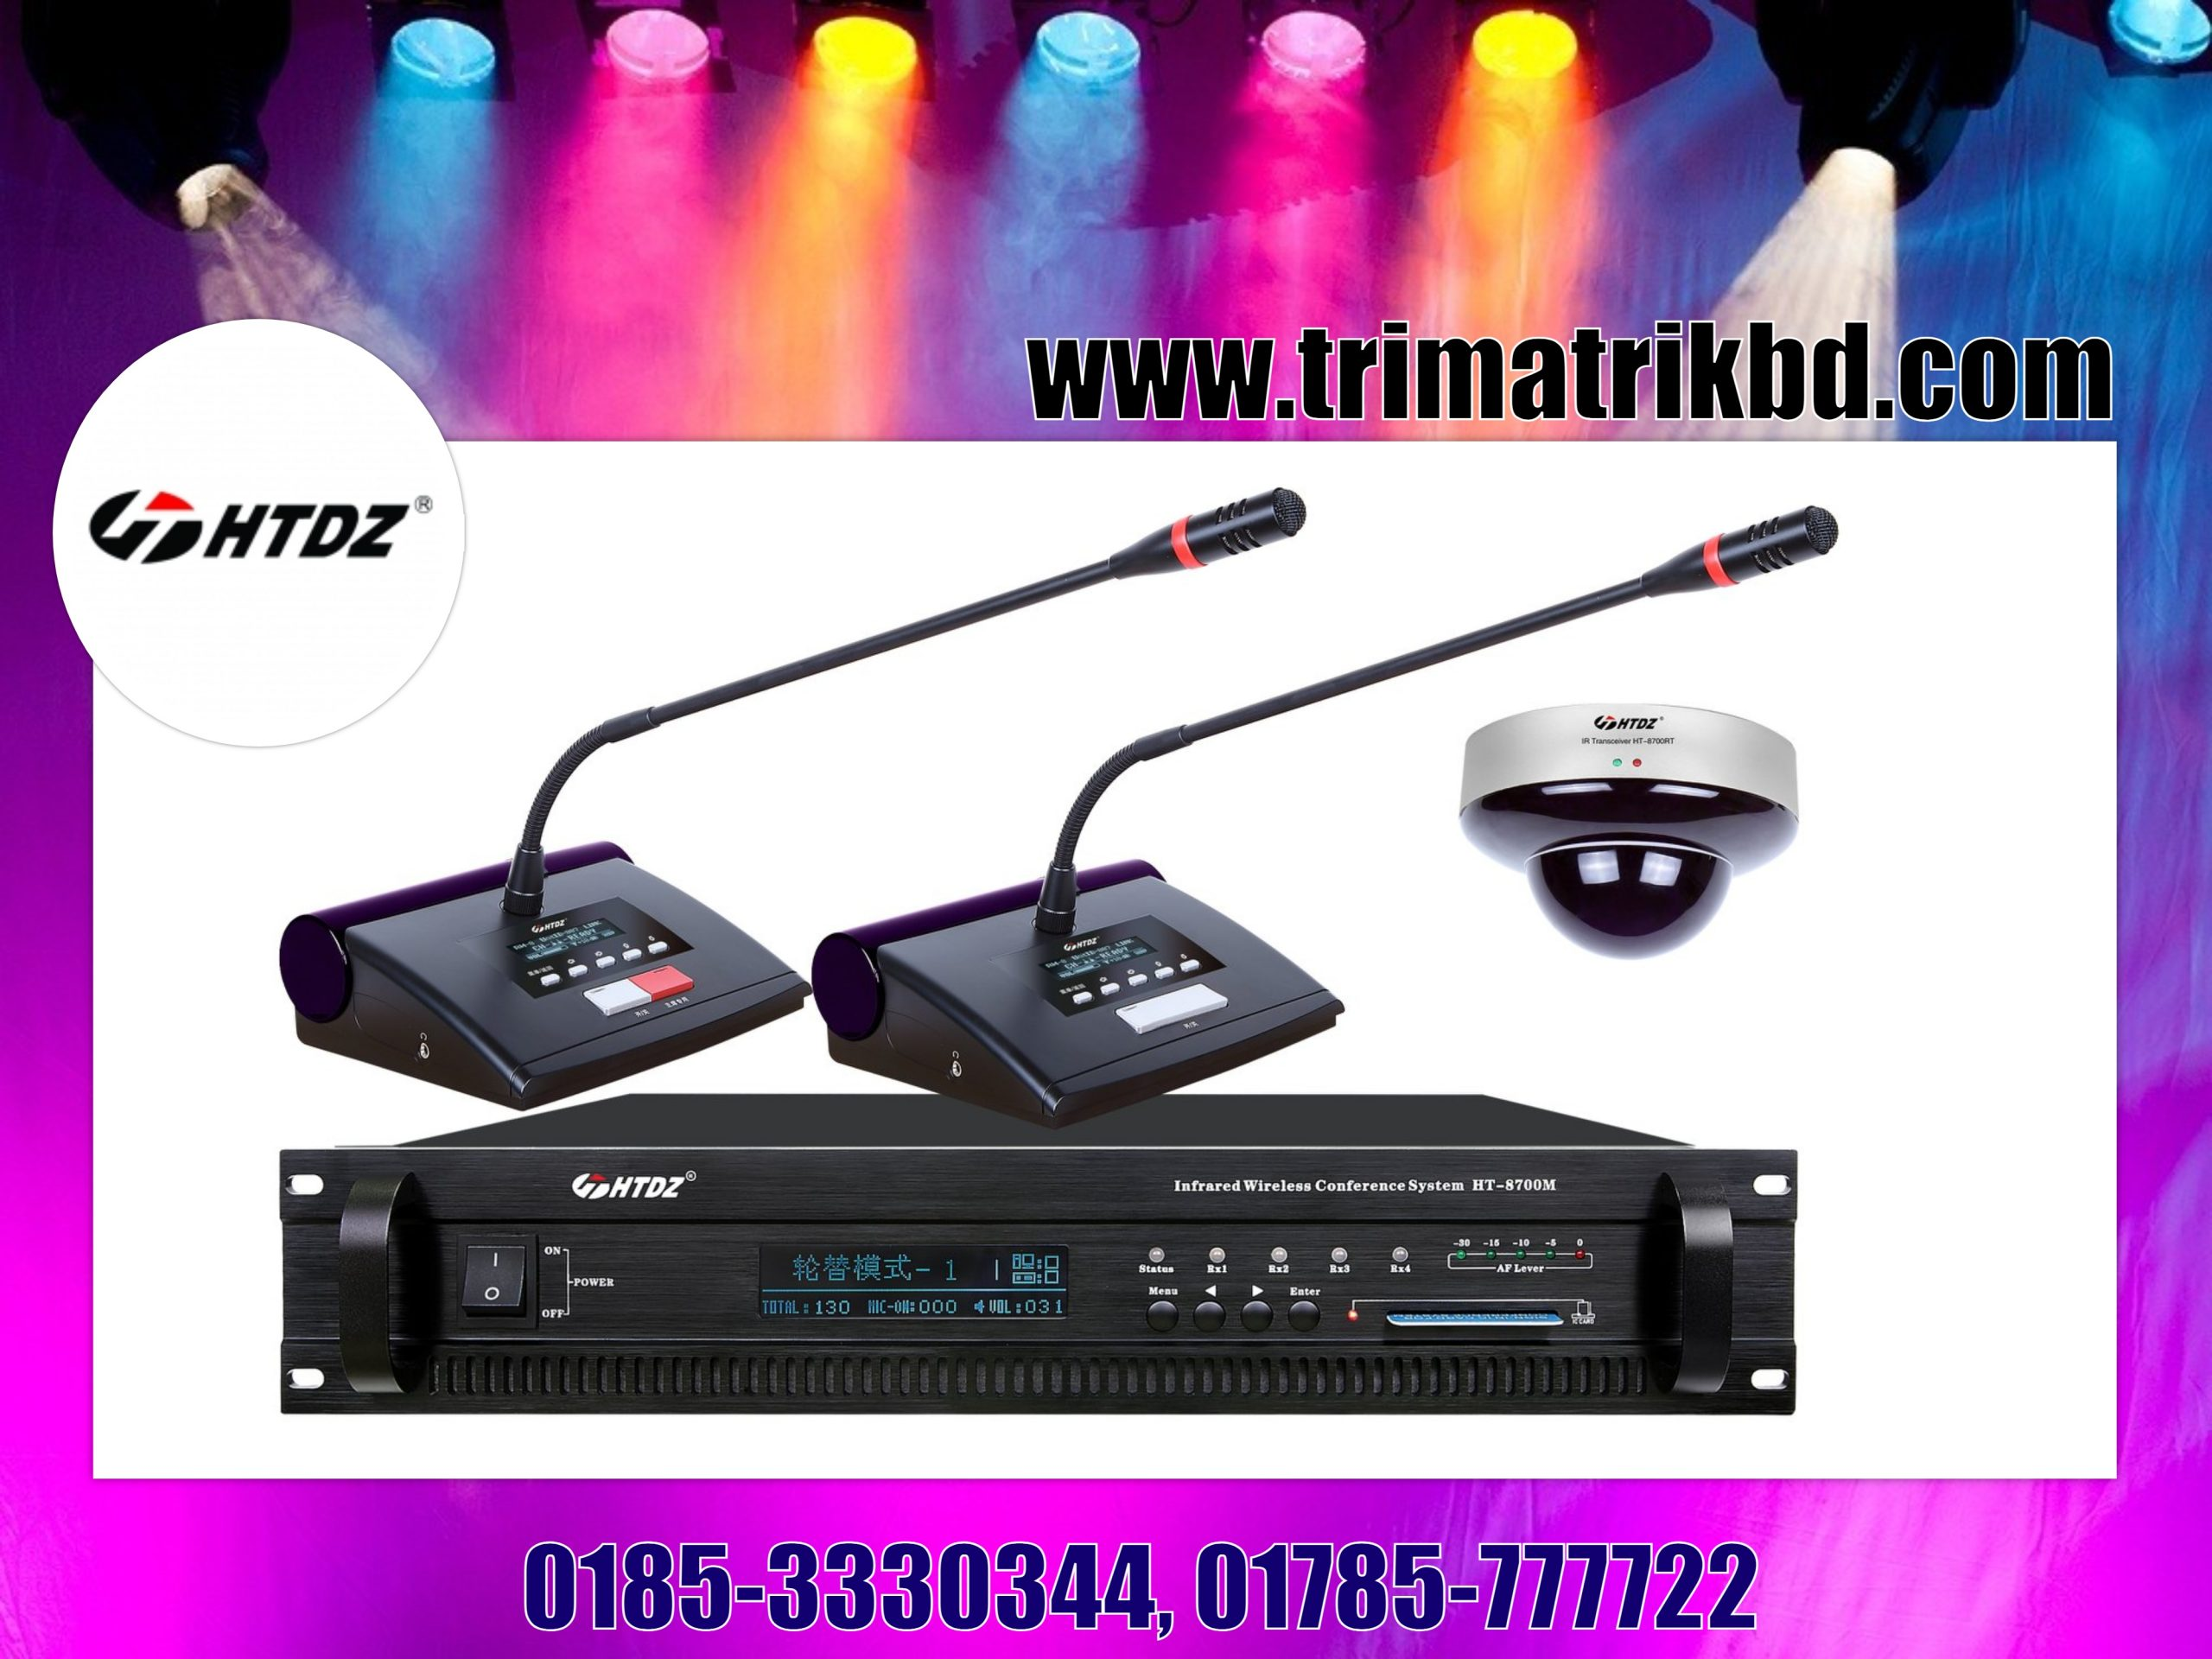 HTDZ Conference System Price in Bangladesh